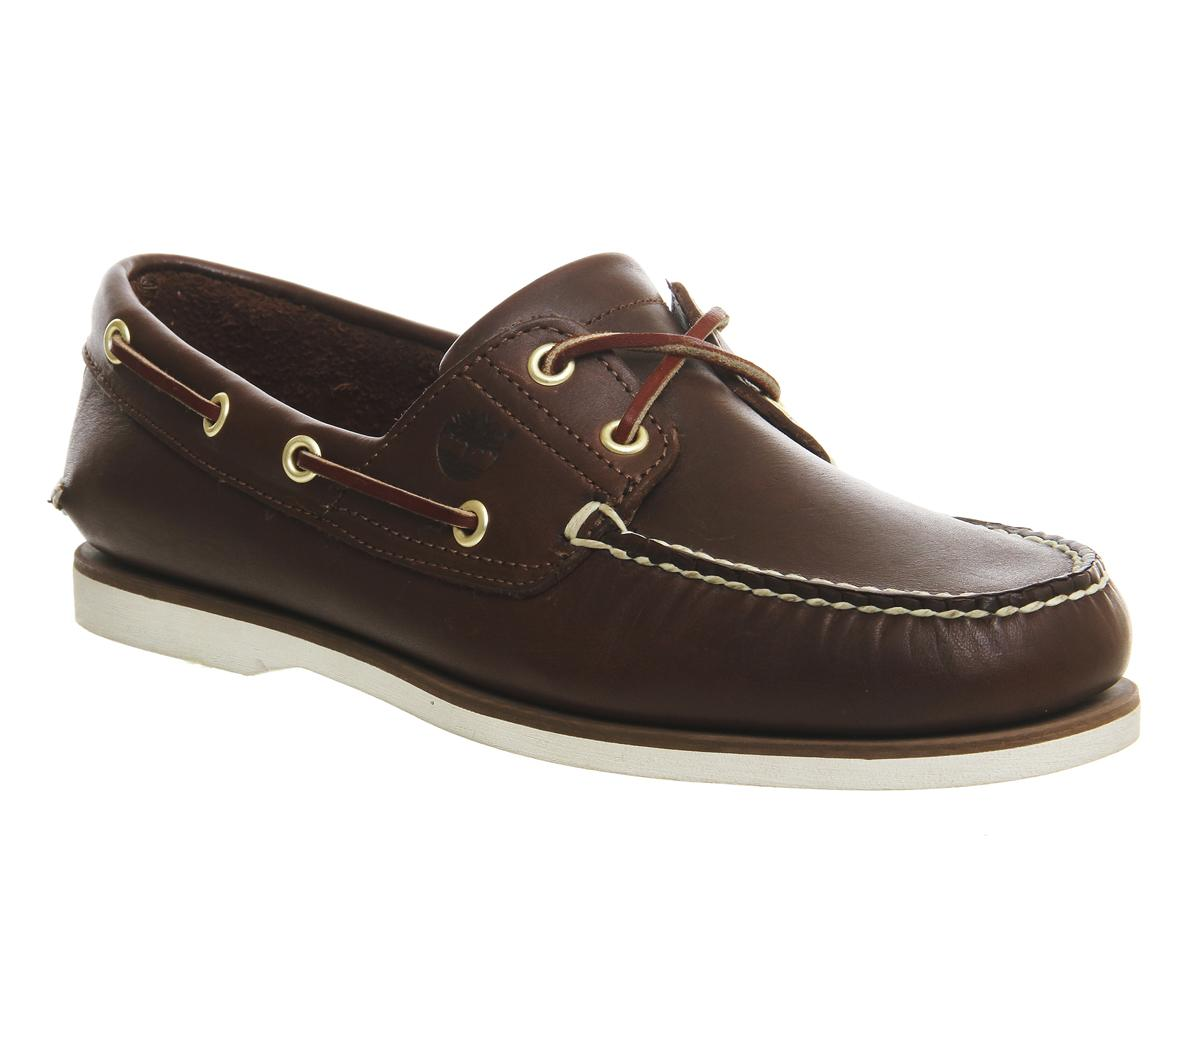 Timberland New Boat Shoes Dark Brown